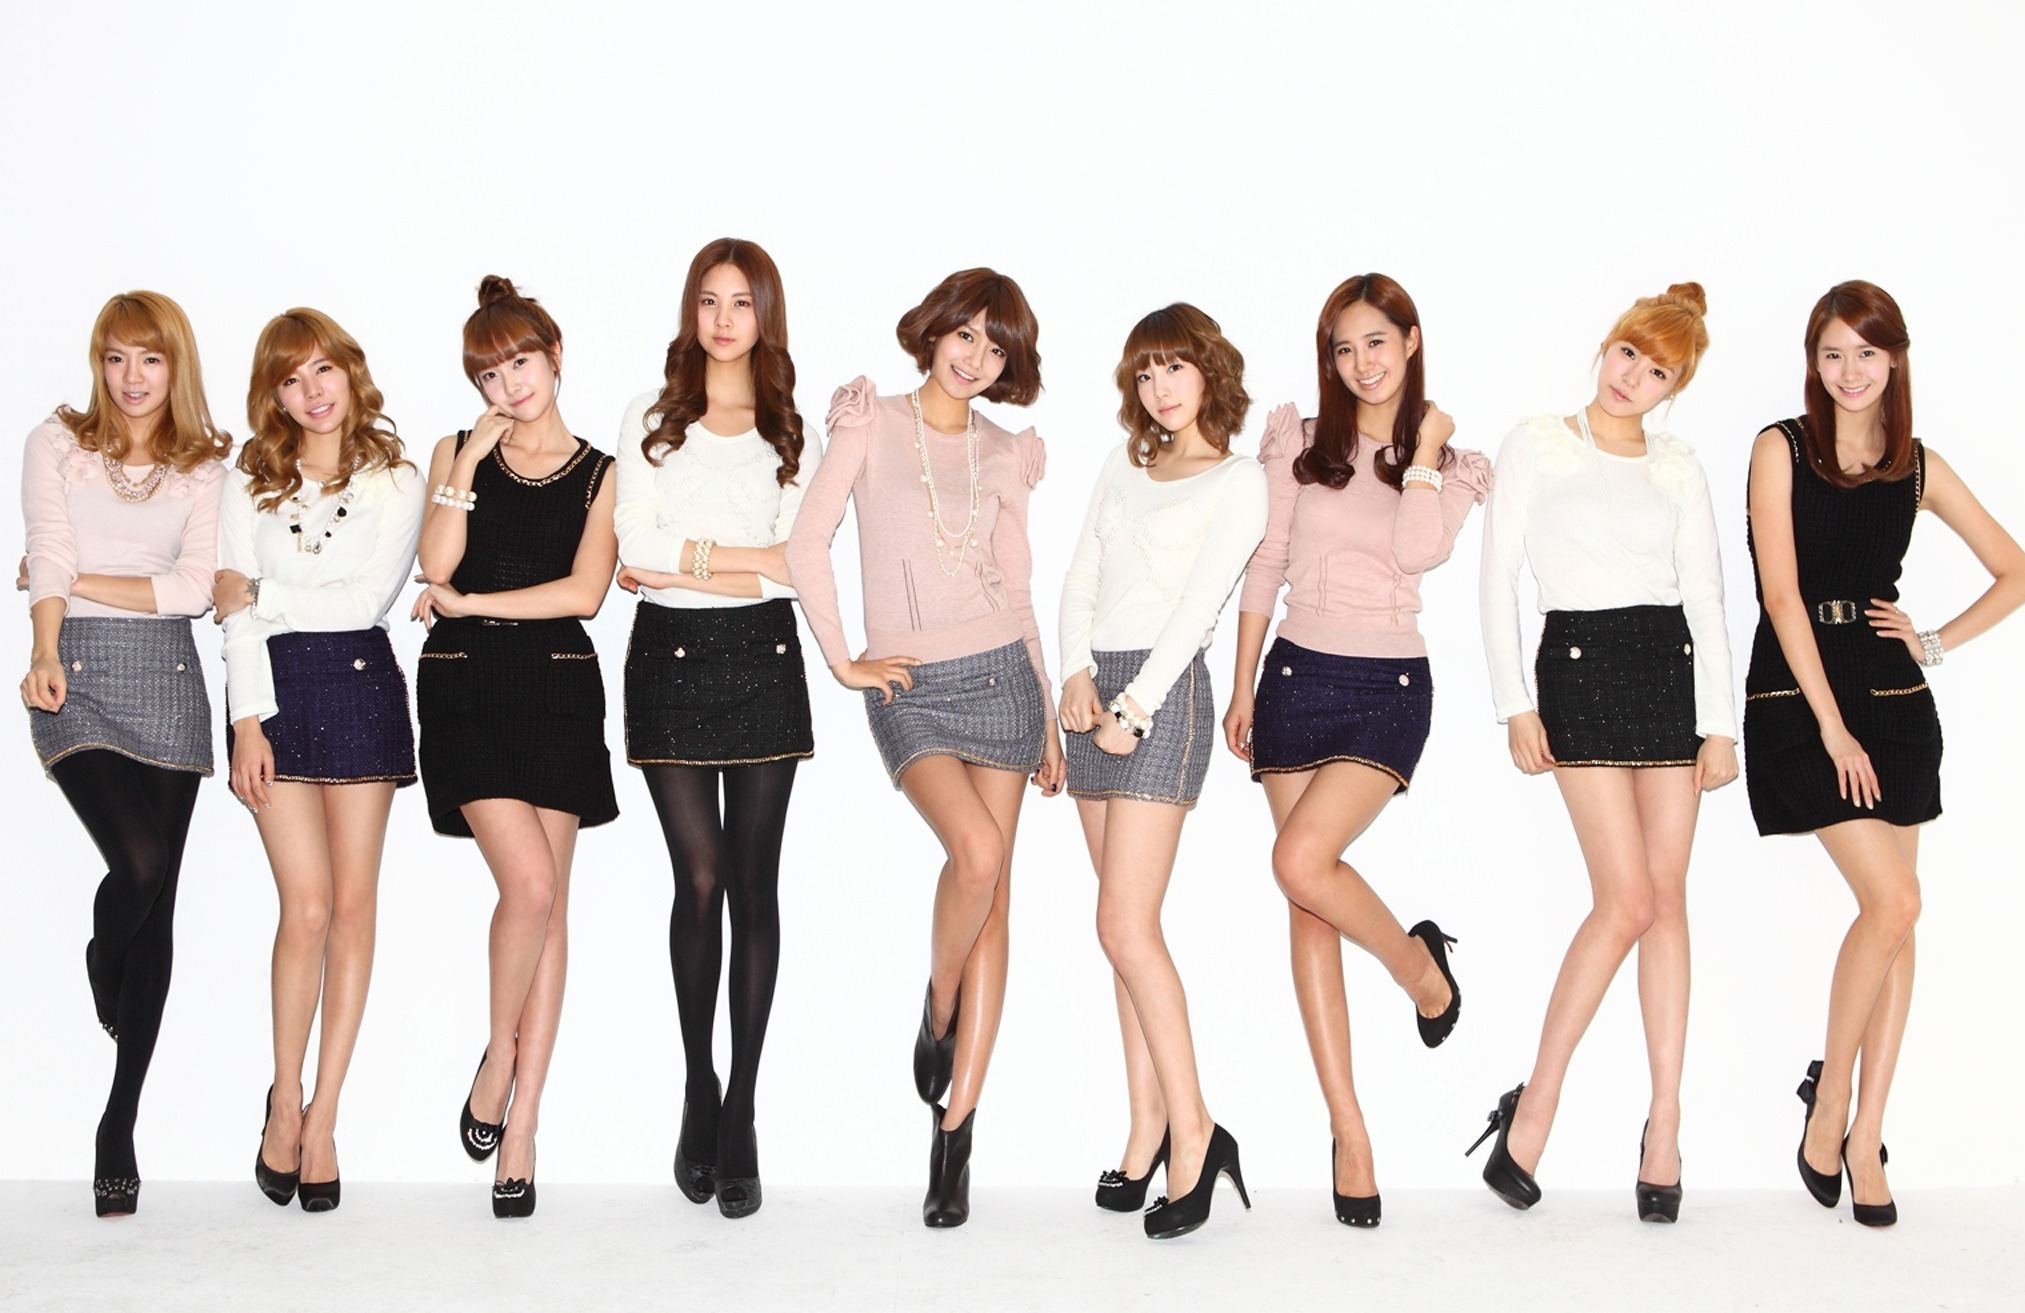 Snsd - Photo Gallery